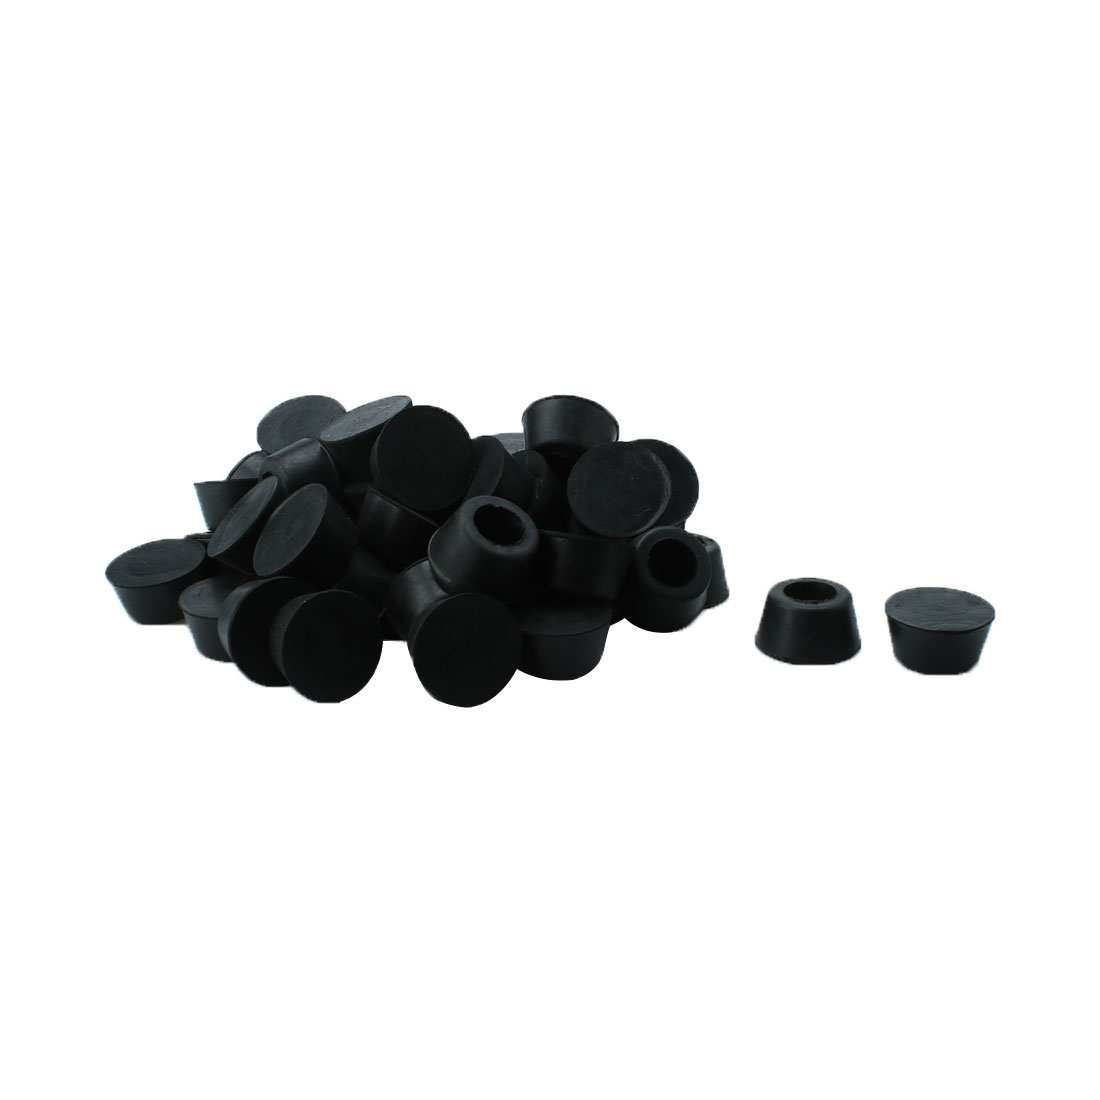 50 Pcs Conical Shaped Furniture Table Chair Black Rubber Foot Pads